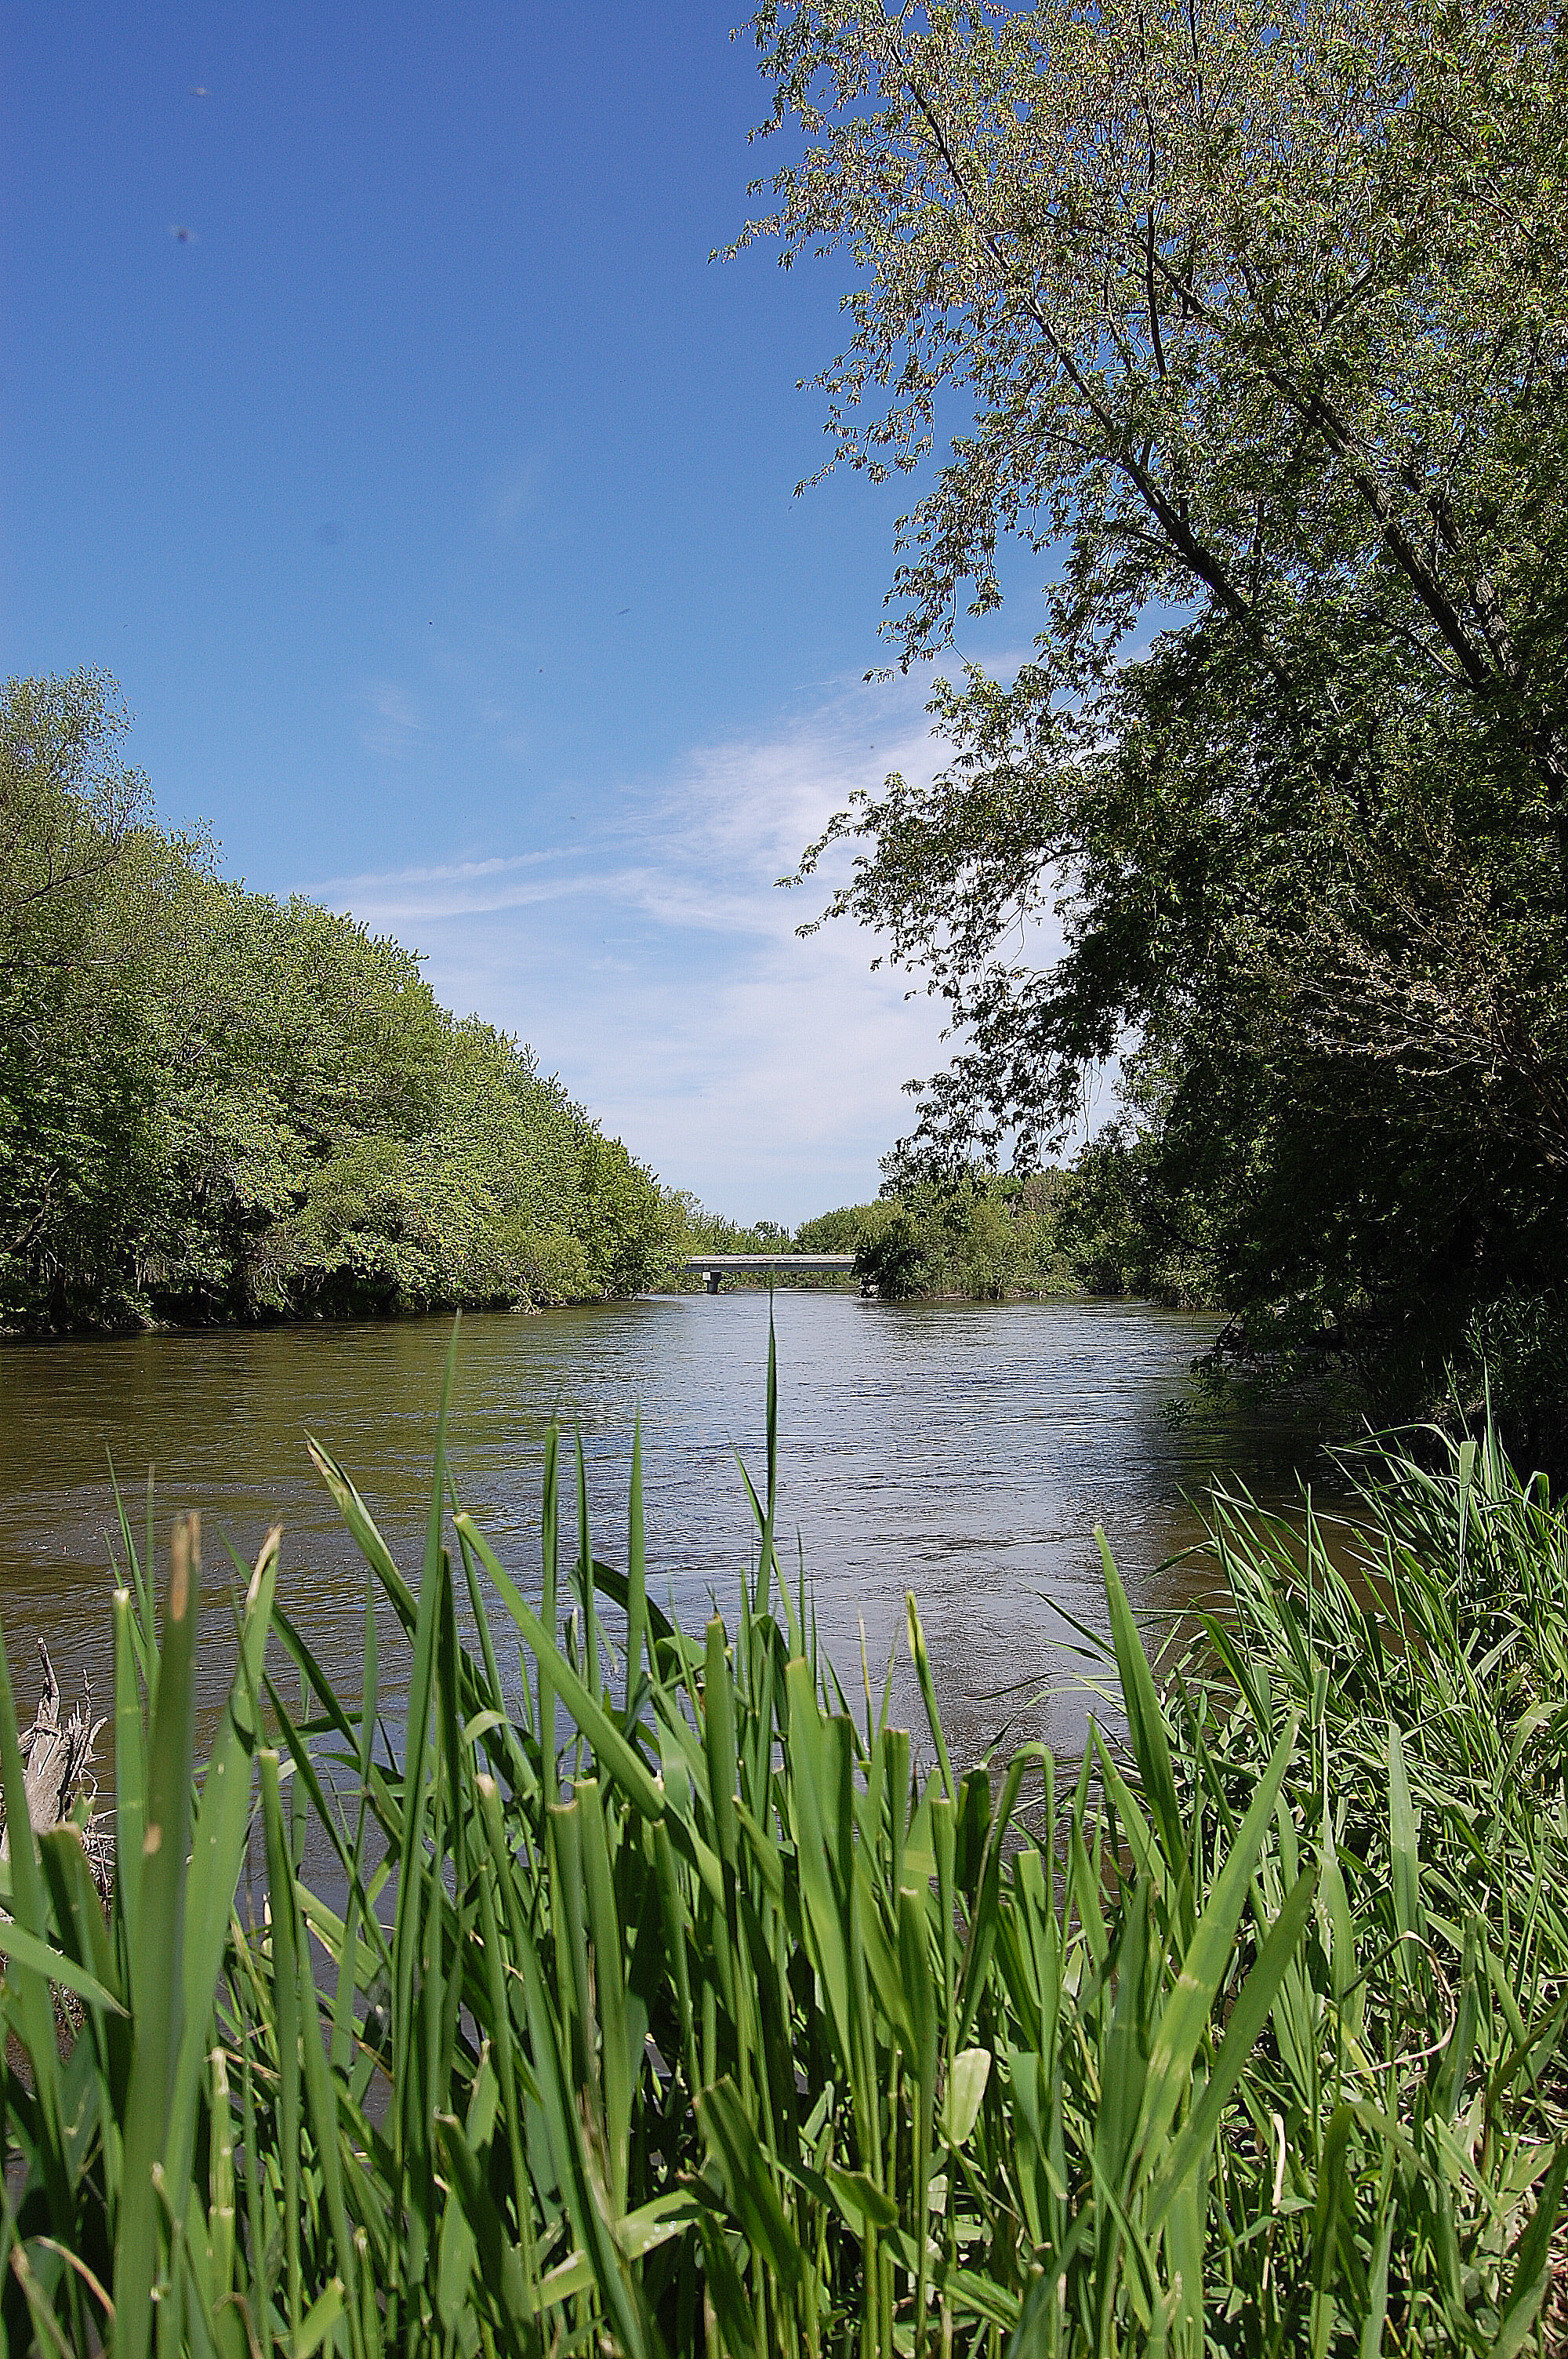 The west branch of the Des Moines River, just a stone's throw from West Bend and a popular fishing destination during my youth.